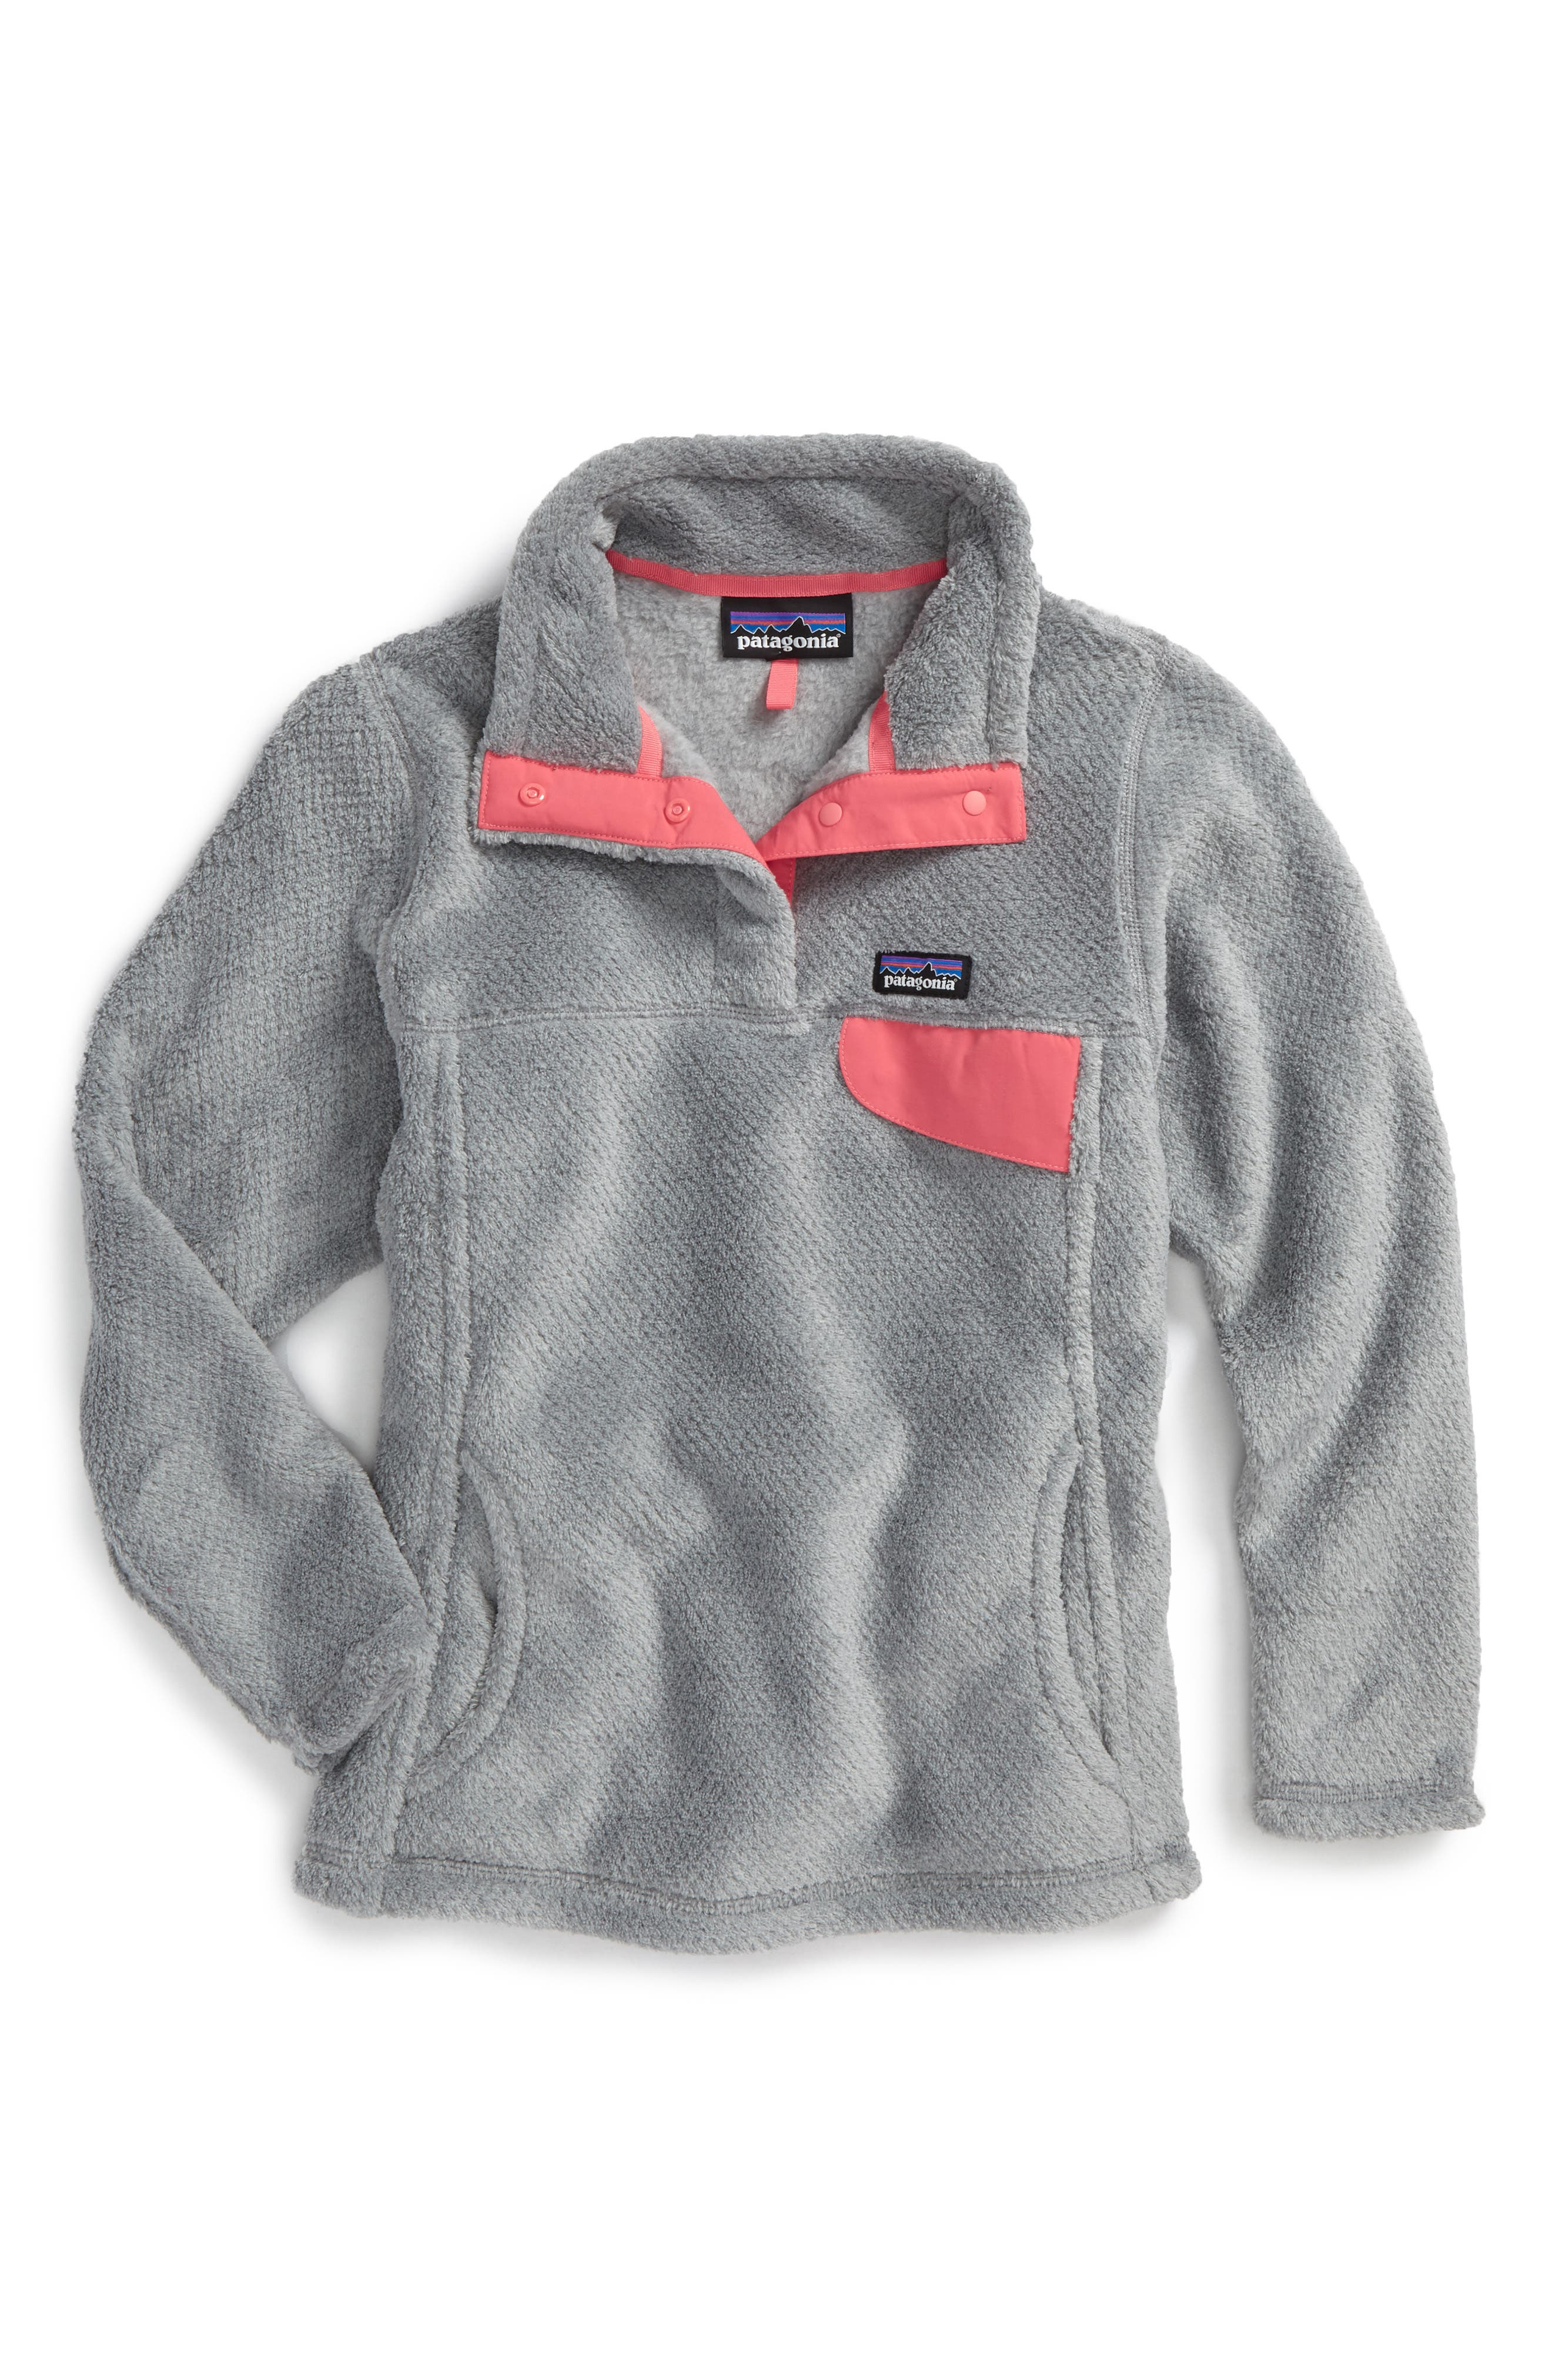 Re-Tool Snap-T<sup>®</sup> Pullover,                         Main,                         color, Tailored Grey - Nickel X-Dye